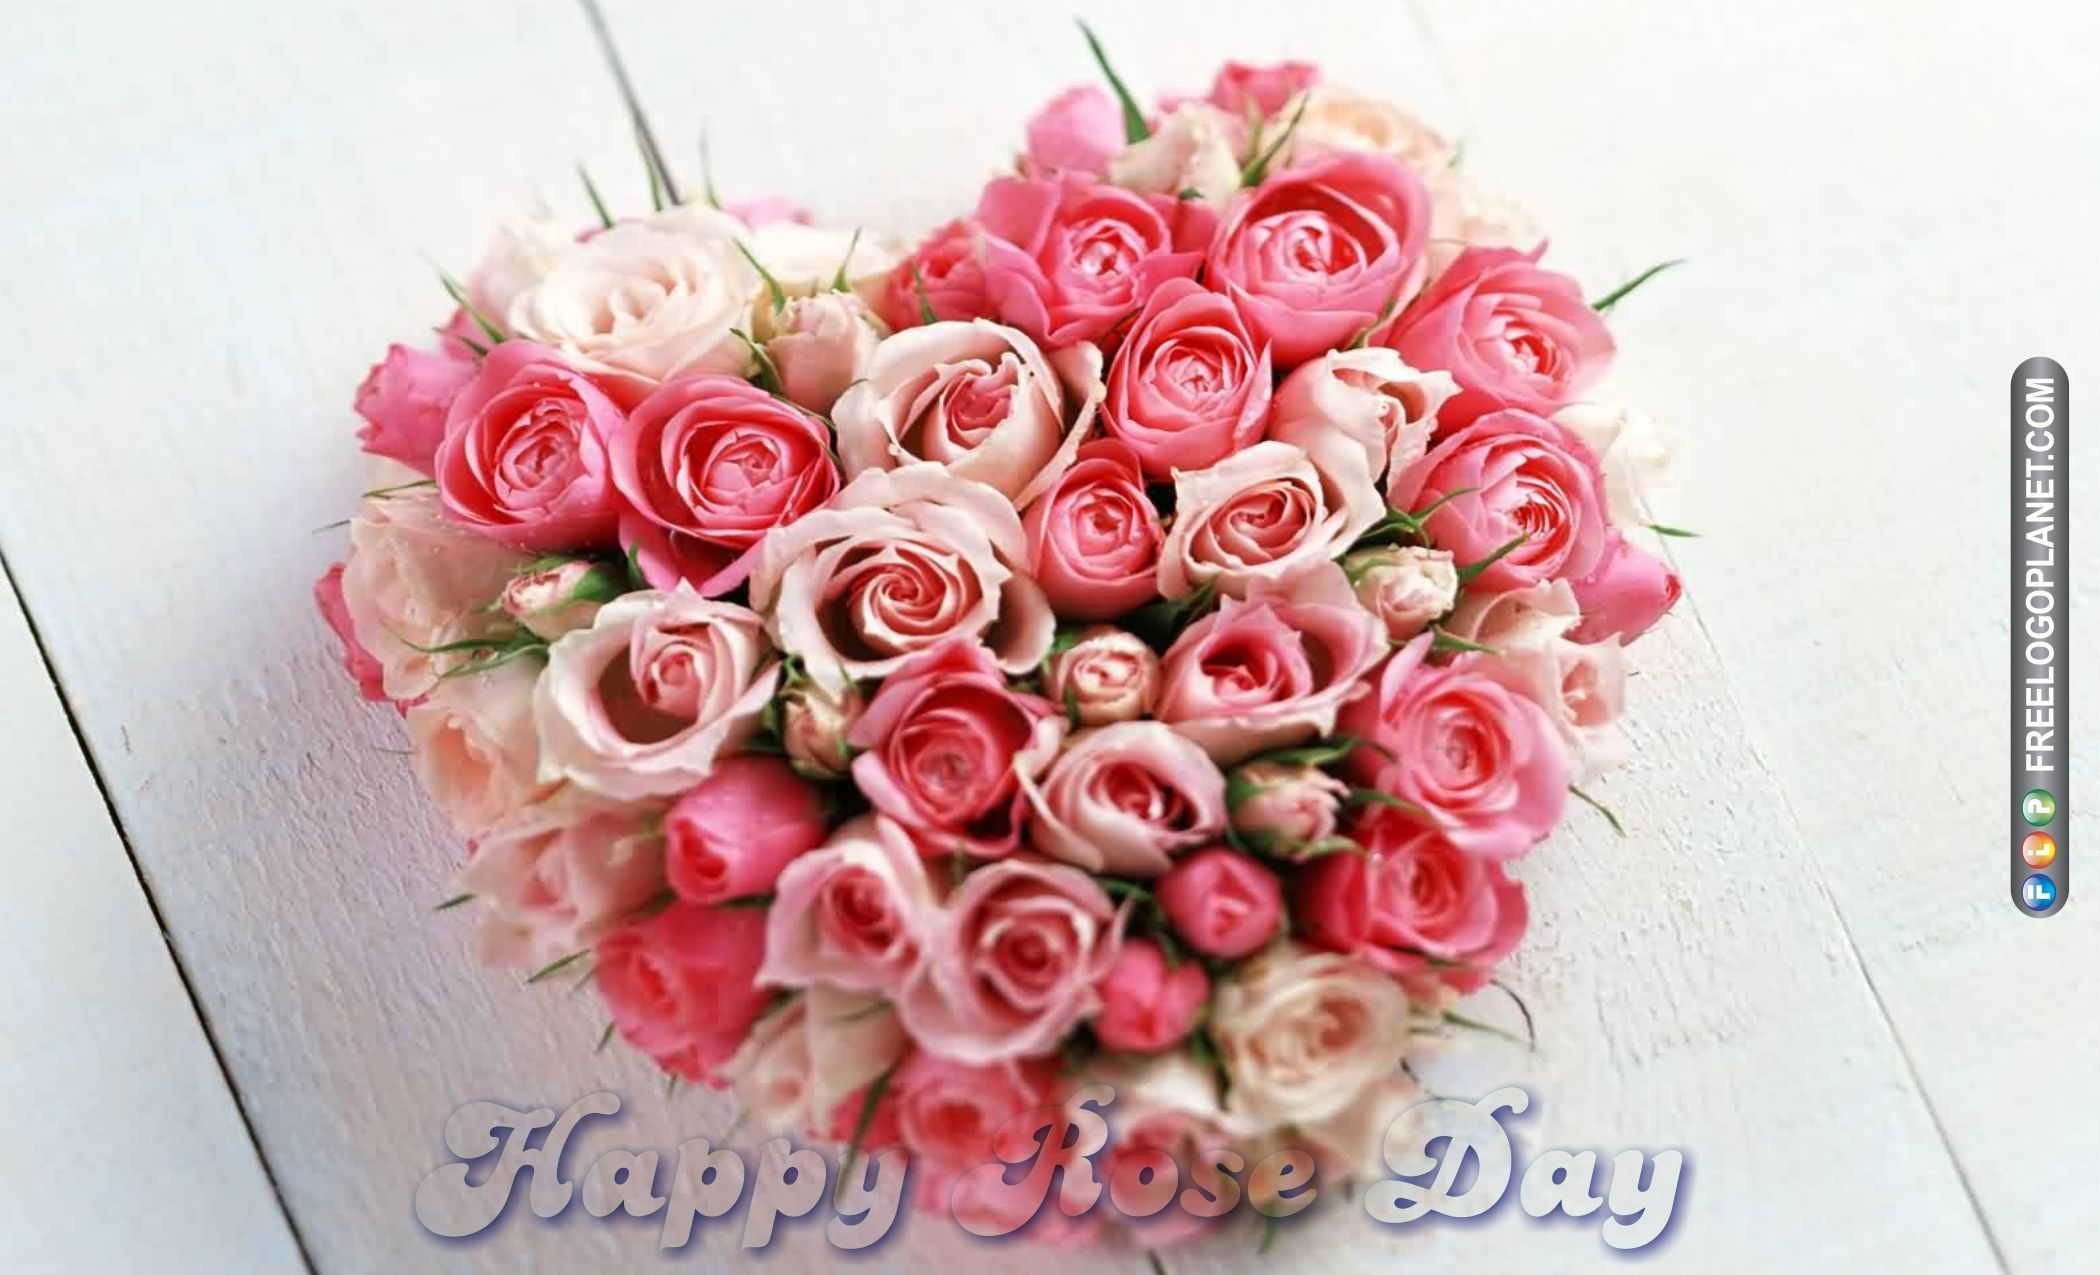 8-Rose Day Wishes